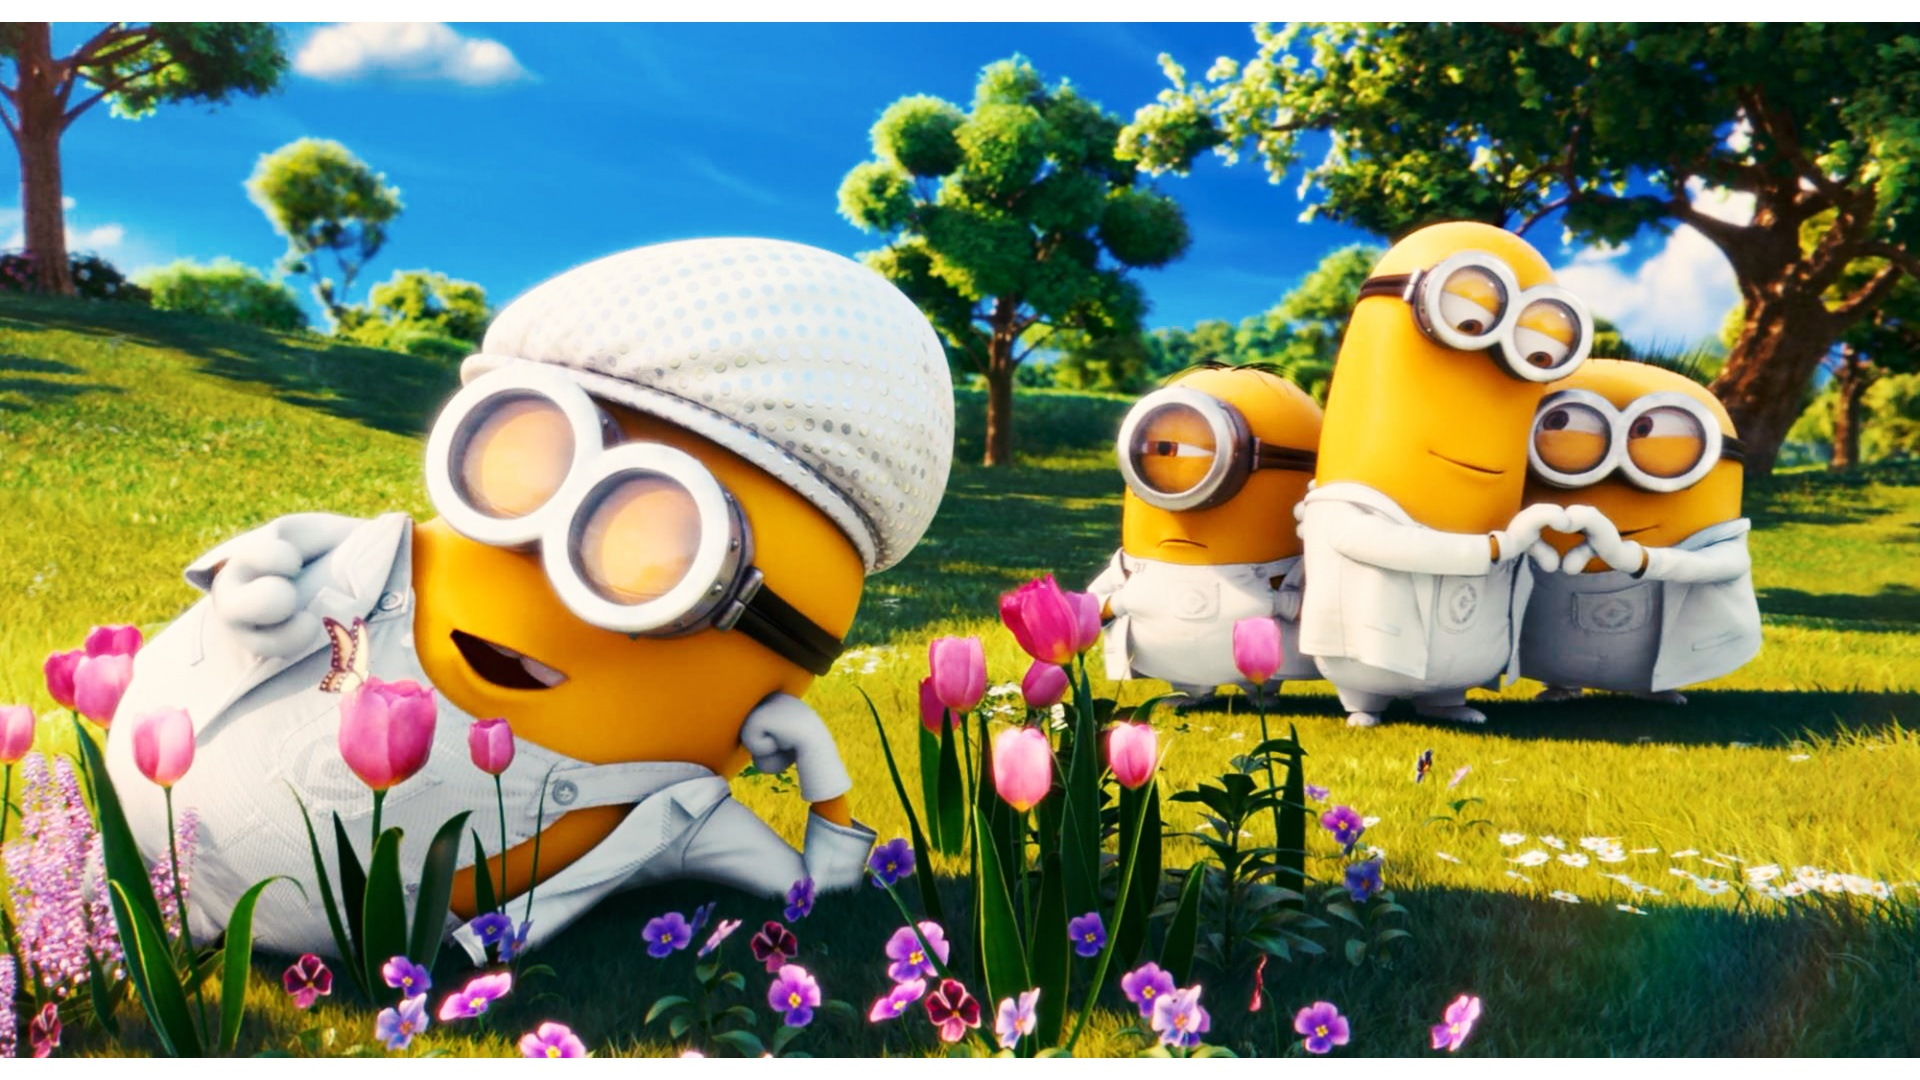 Download Romantic Minions Love Romance HD Wallpaper Search more high 1920x1080